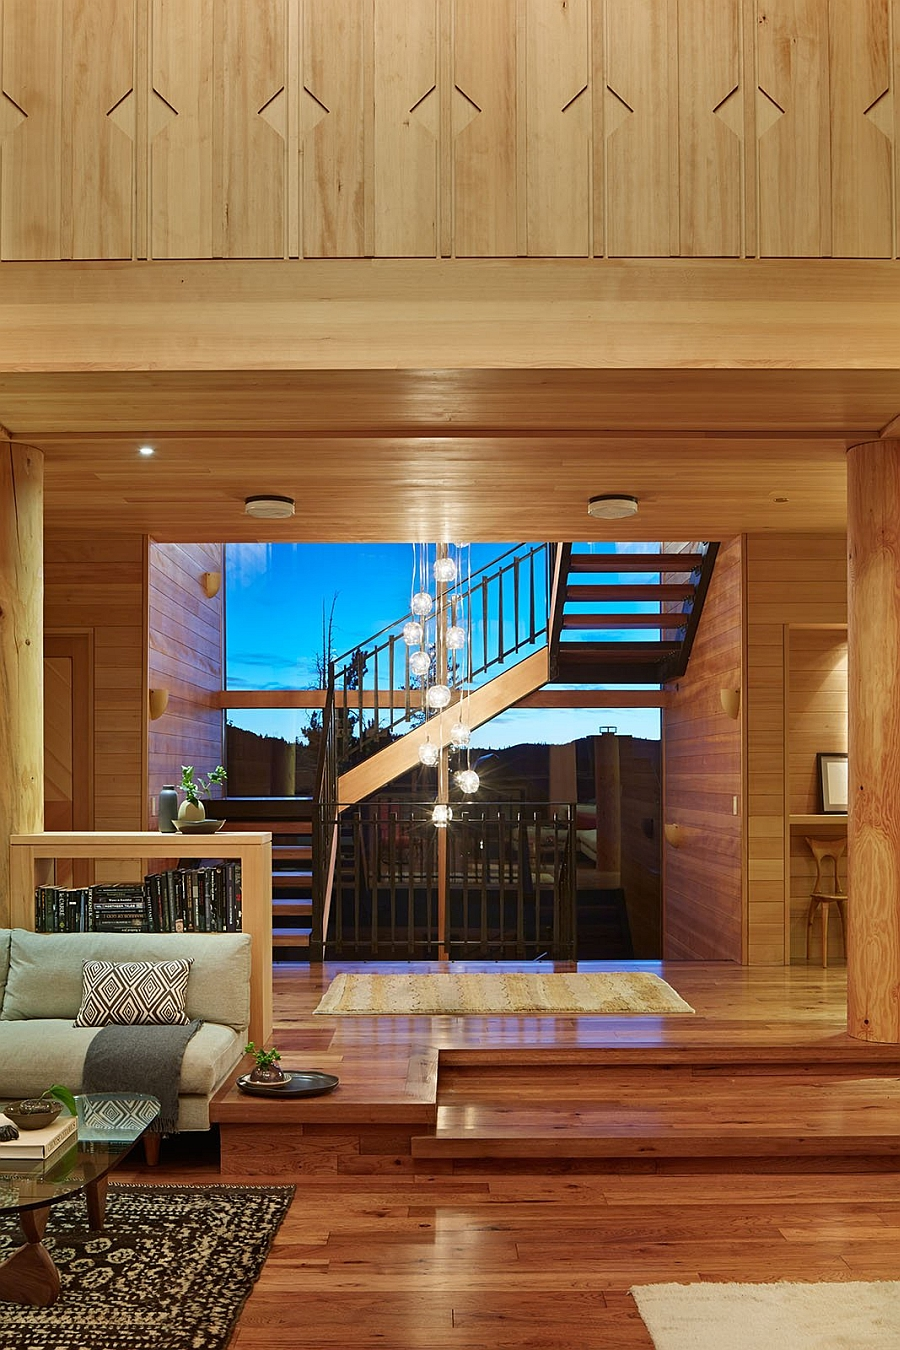 Beautiful lower level of the stylish residence inside California's Ski Resort